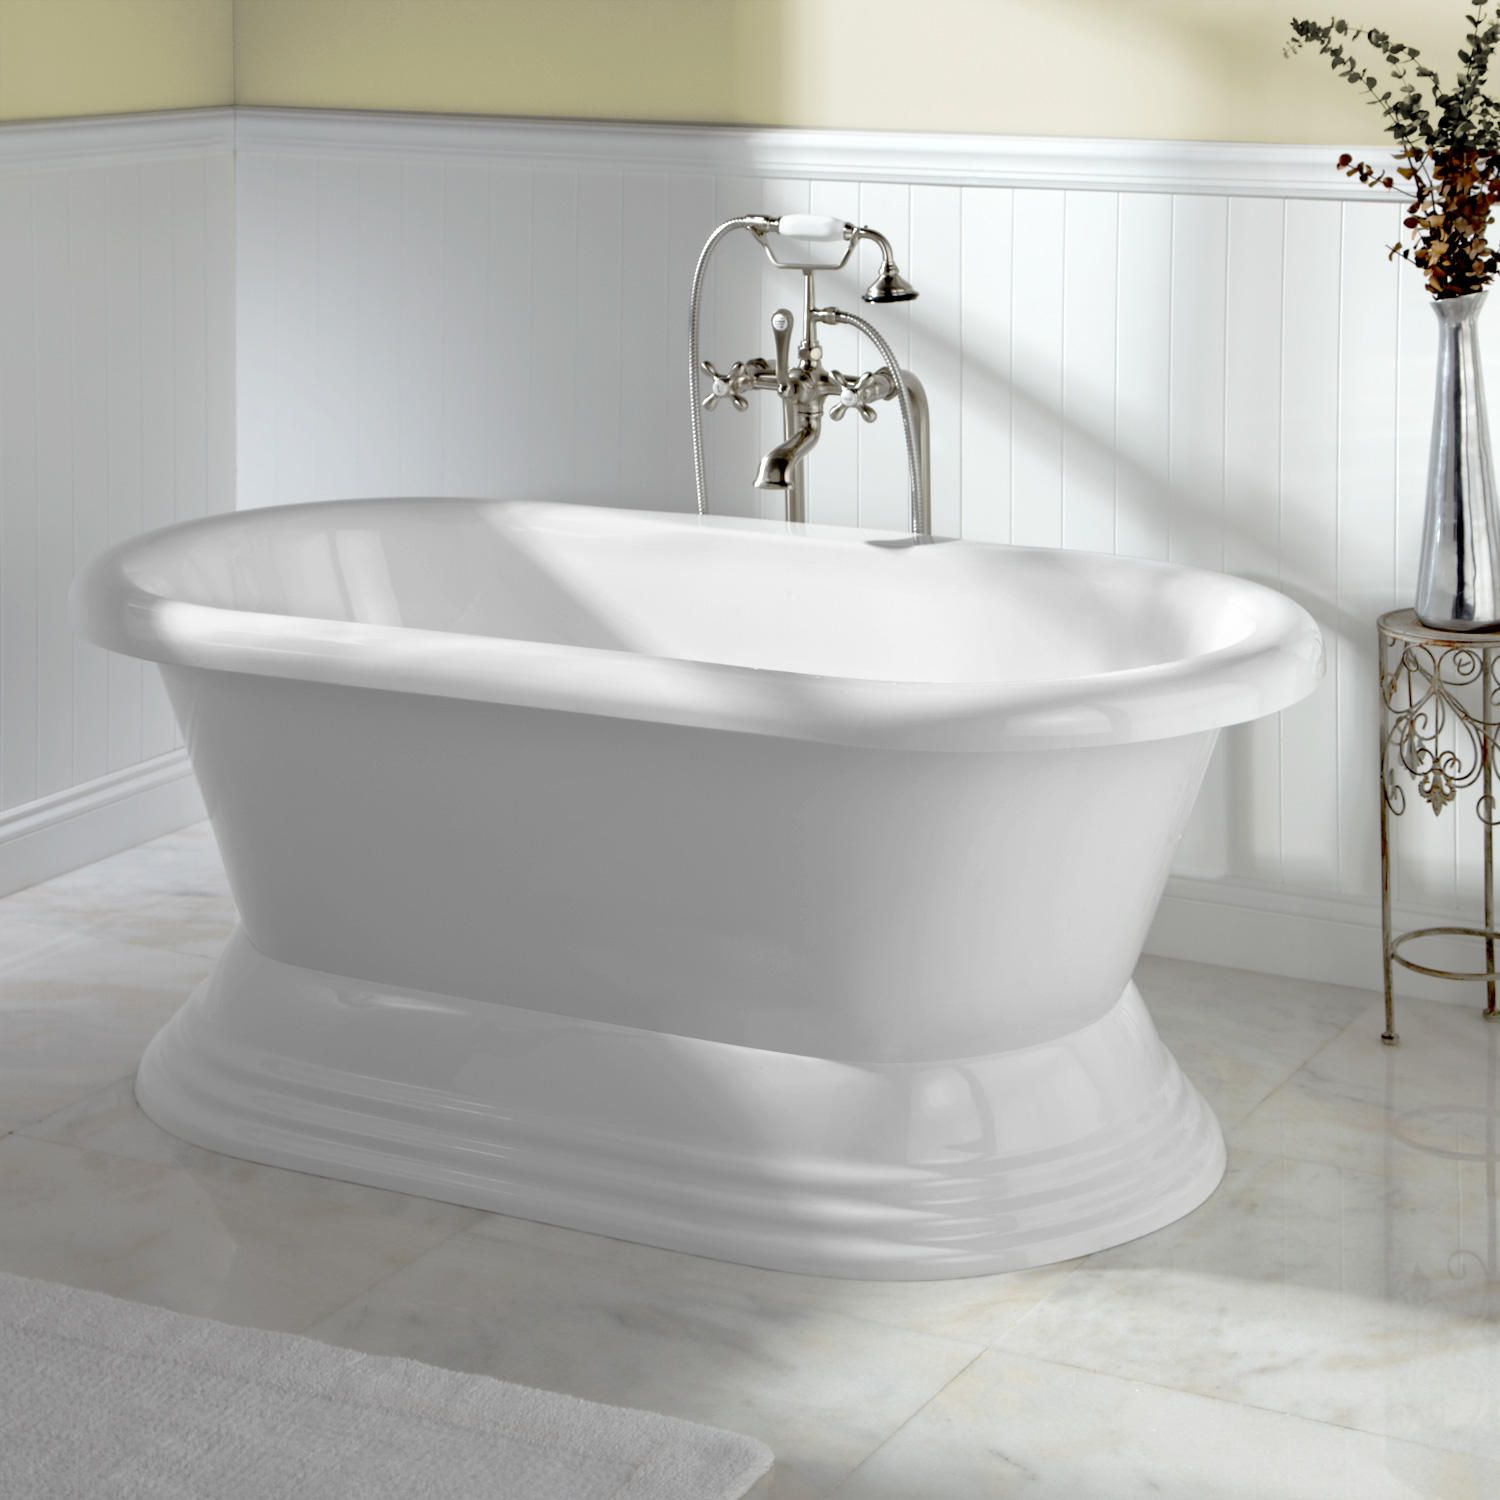 Freestanding Tub Buying Guide - Best Style, Size, and Material for ...